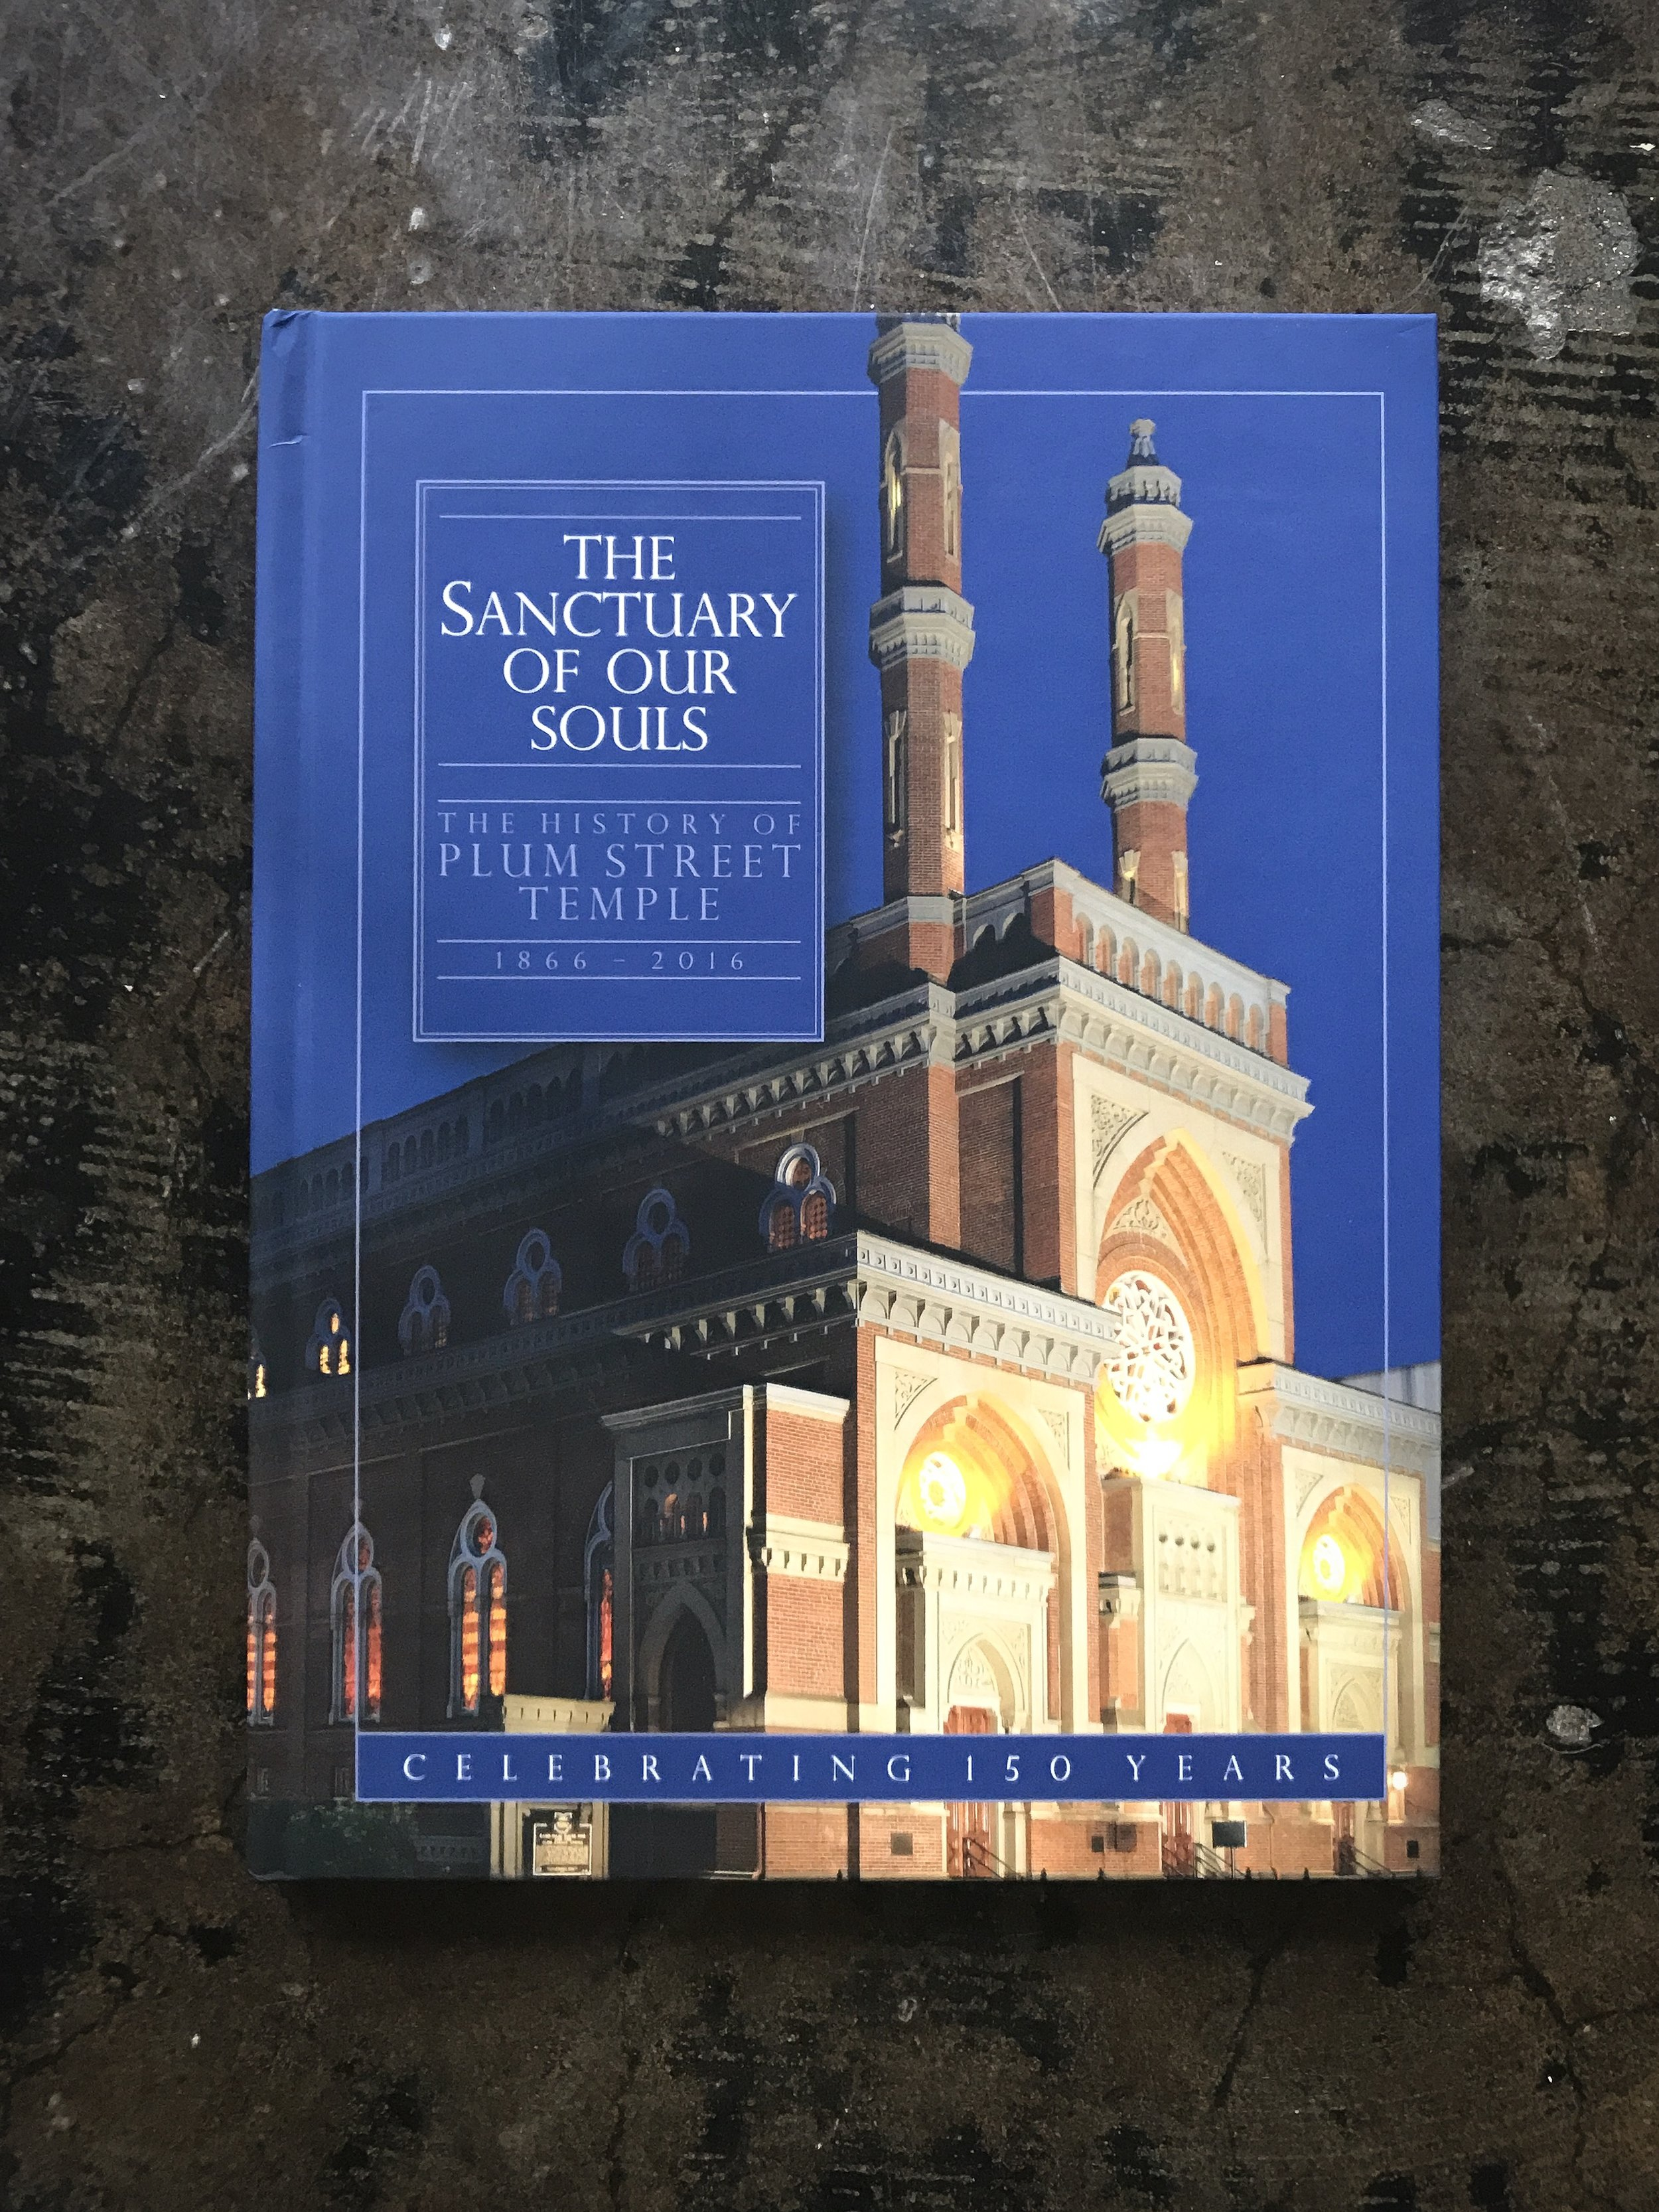 The Sanctuary of Our Souls: The History of Plum Street Temple - First Edition (print). The Plum Street Temple celebrated its 150th anniversary in 2016 and created a hardback book detailing its long history. I contributed 20 high res photos for this book.